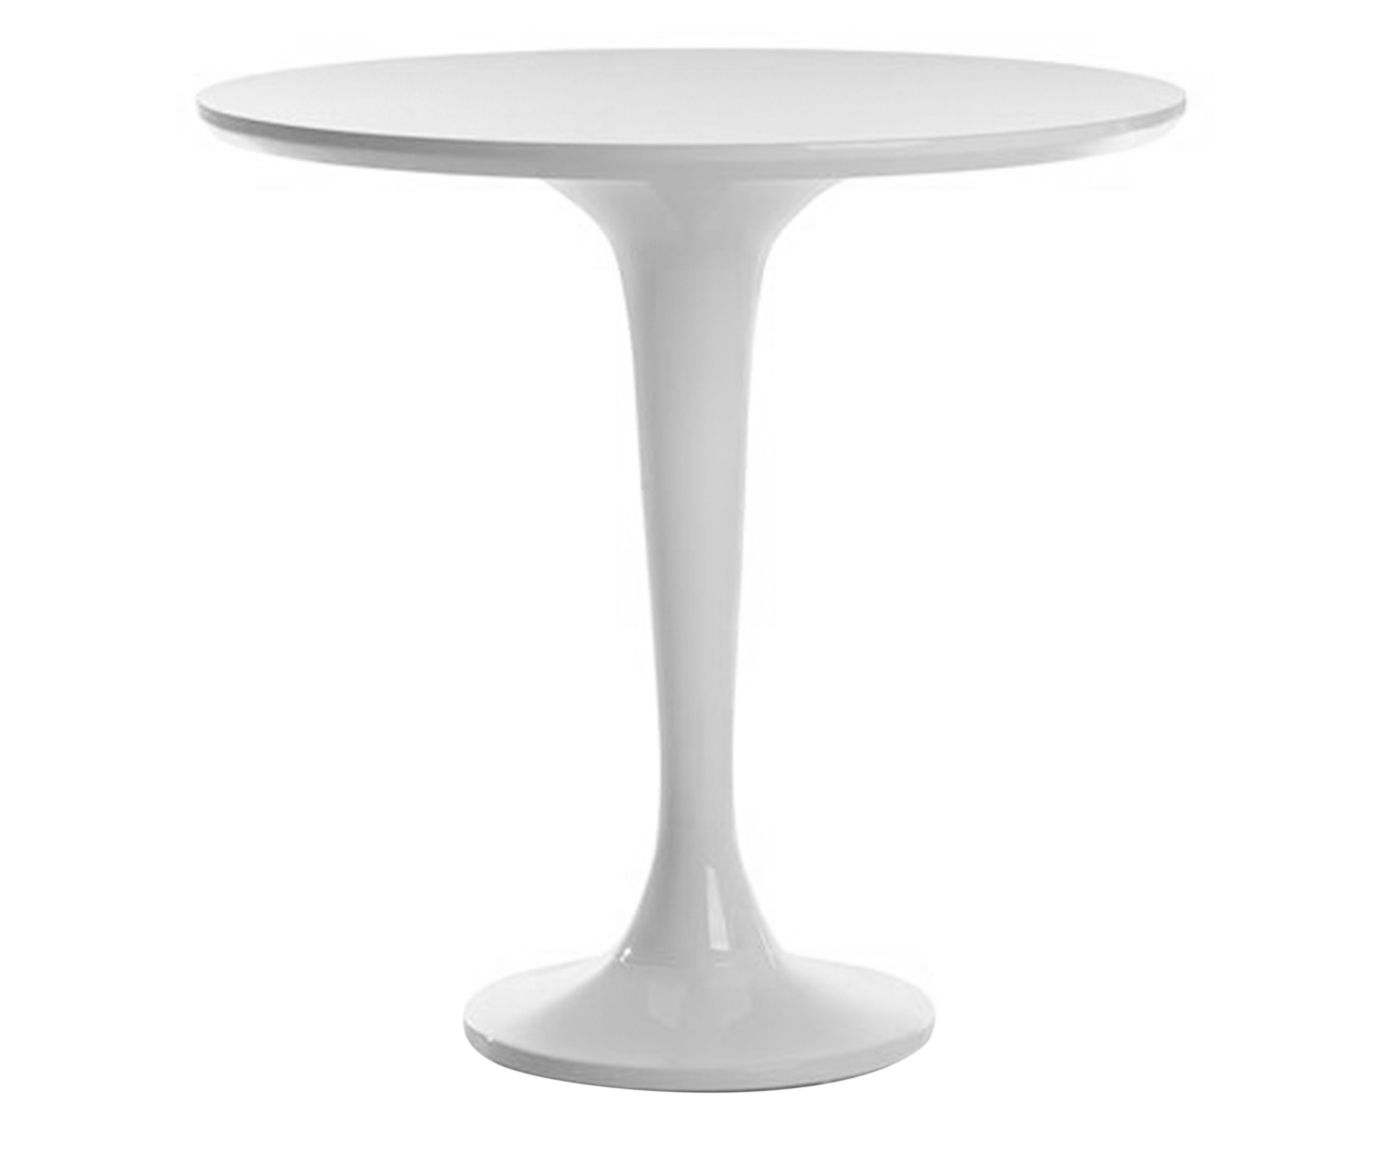 Mesa Lateral Pino Branca - 70cm | Westwing.com.br